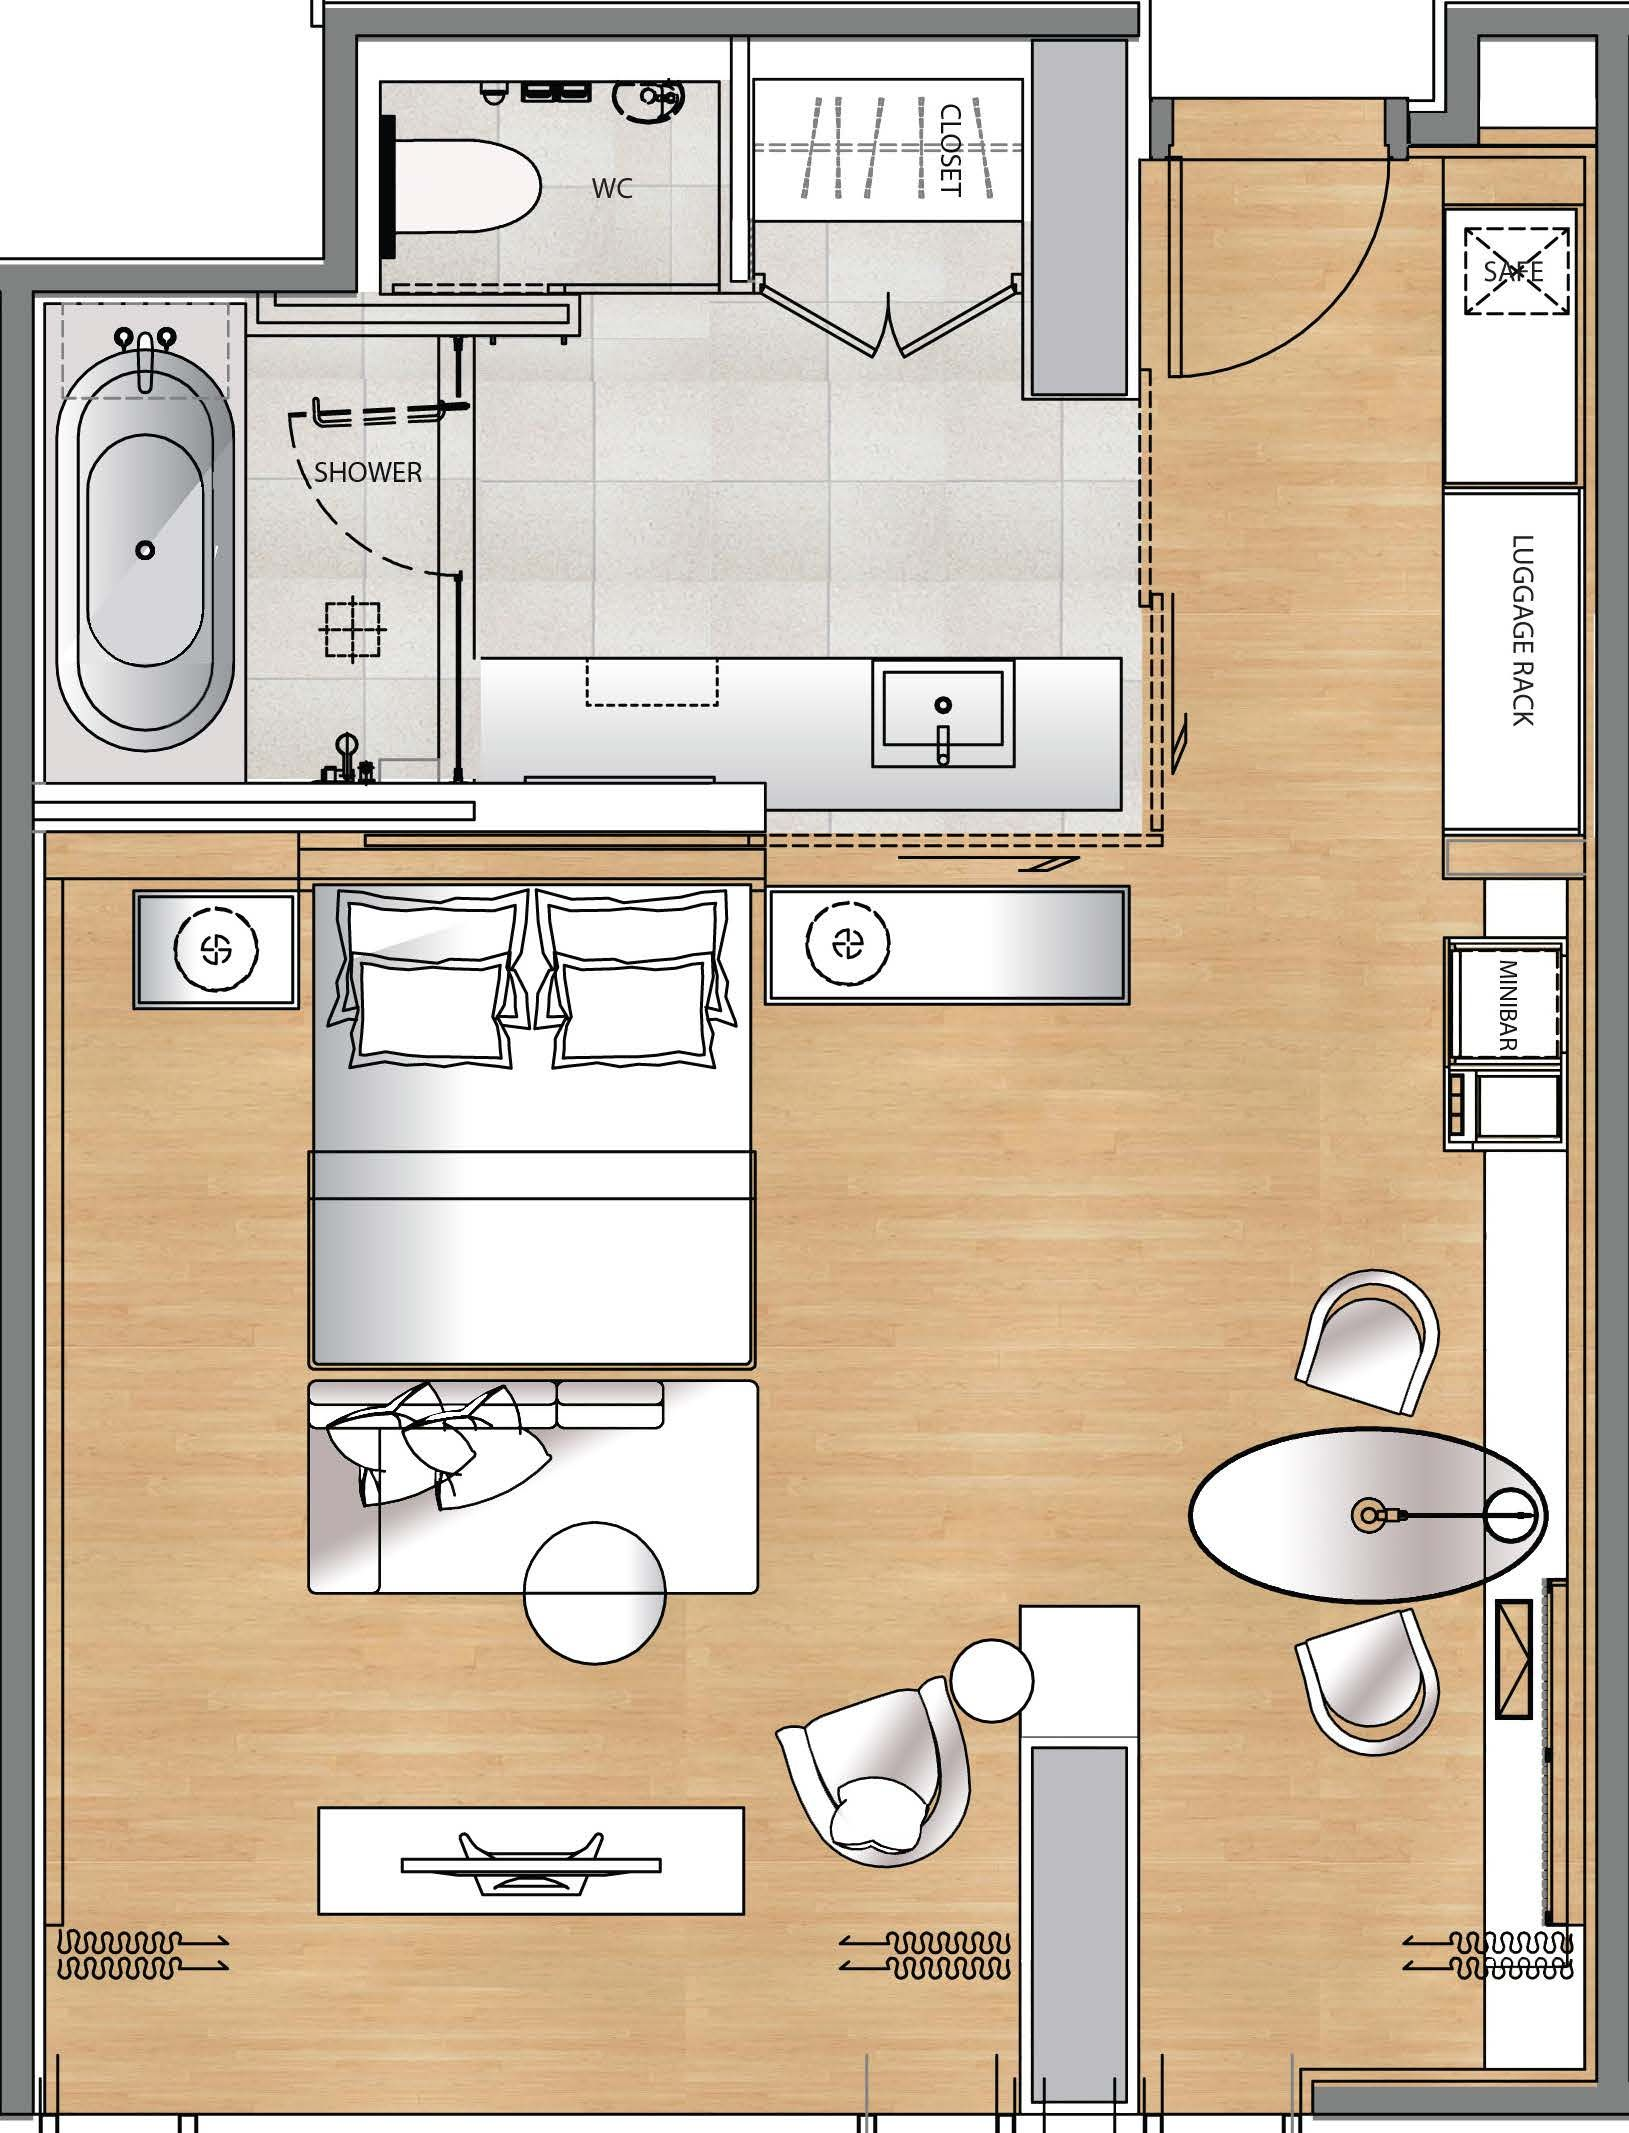 Hotel gym floor plan google search hotel rooms Room design planner